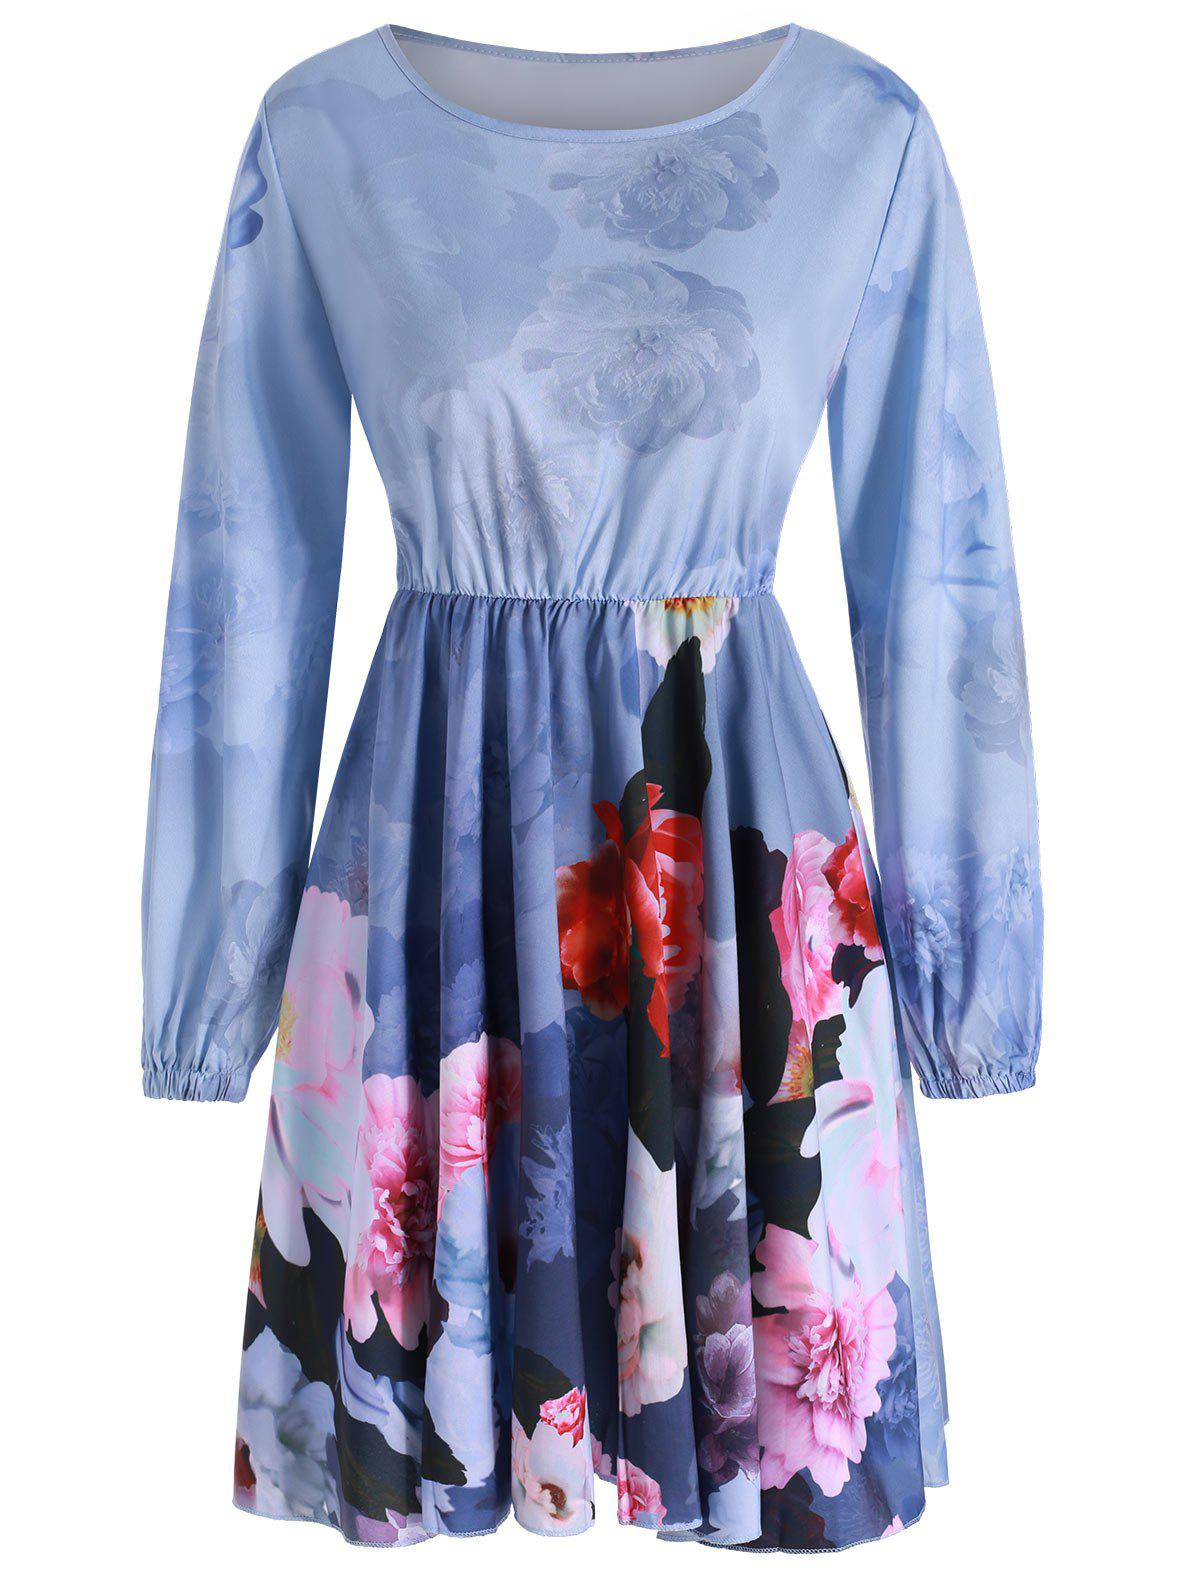 Floral Print Long Sleeves Flare Dress - BLUE GRAY S